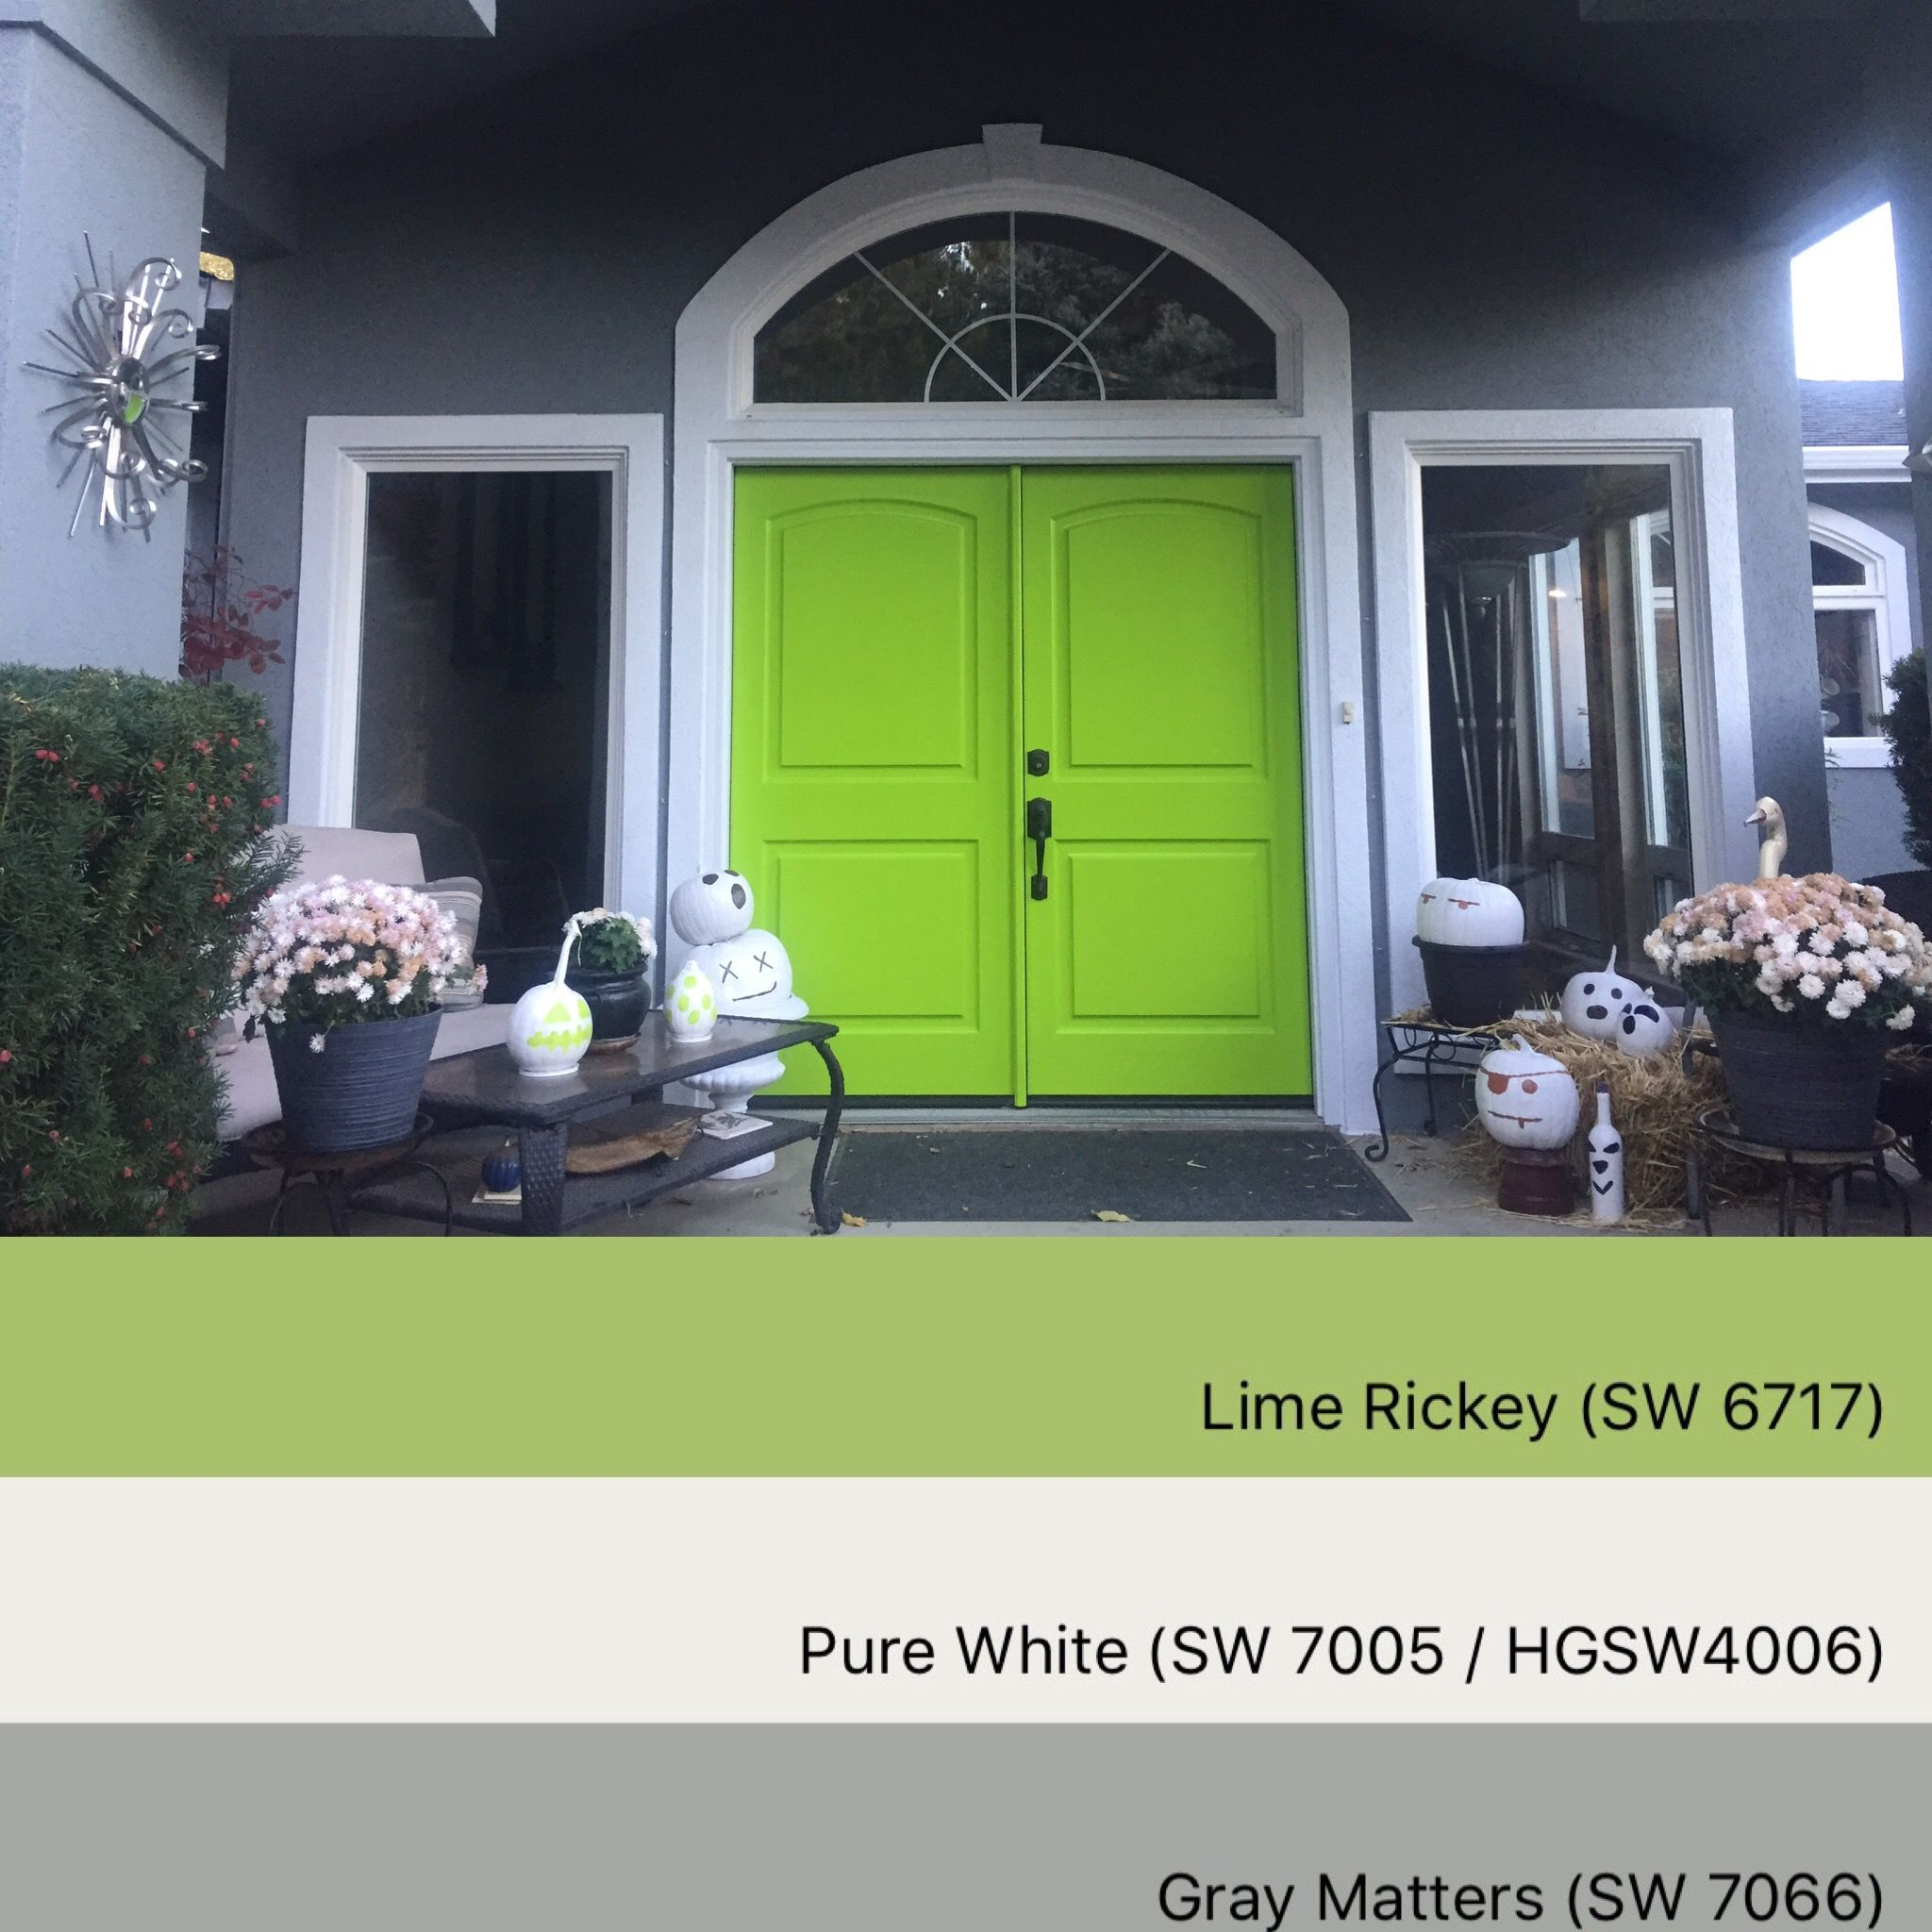 sherwin williams paint colors lime richey 6717 pure white 7005